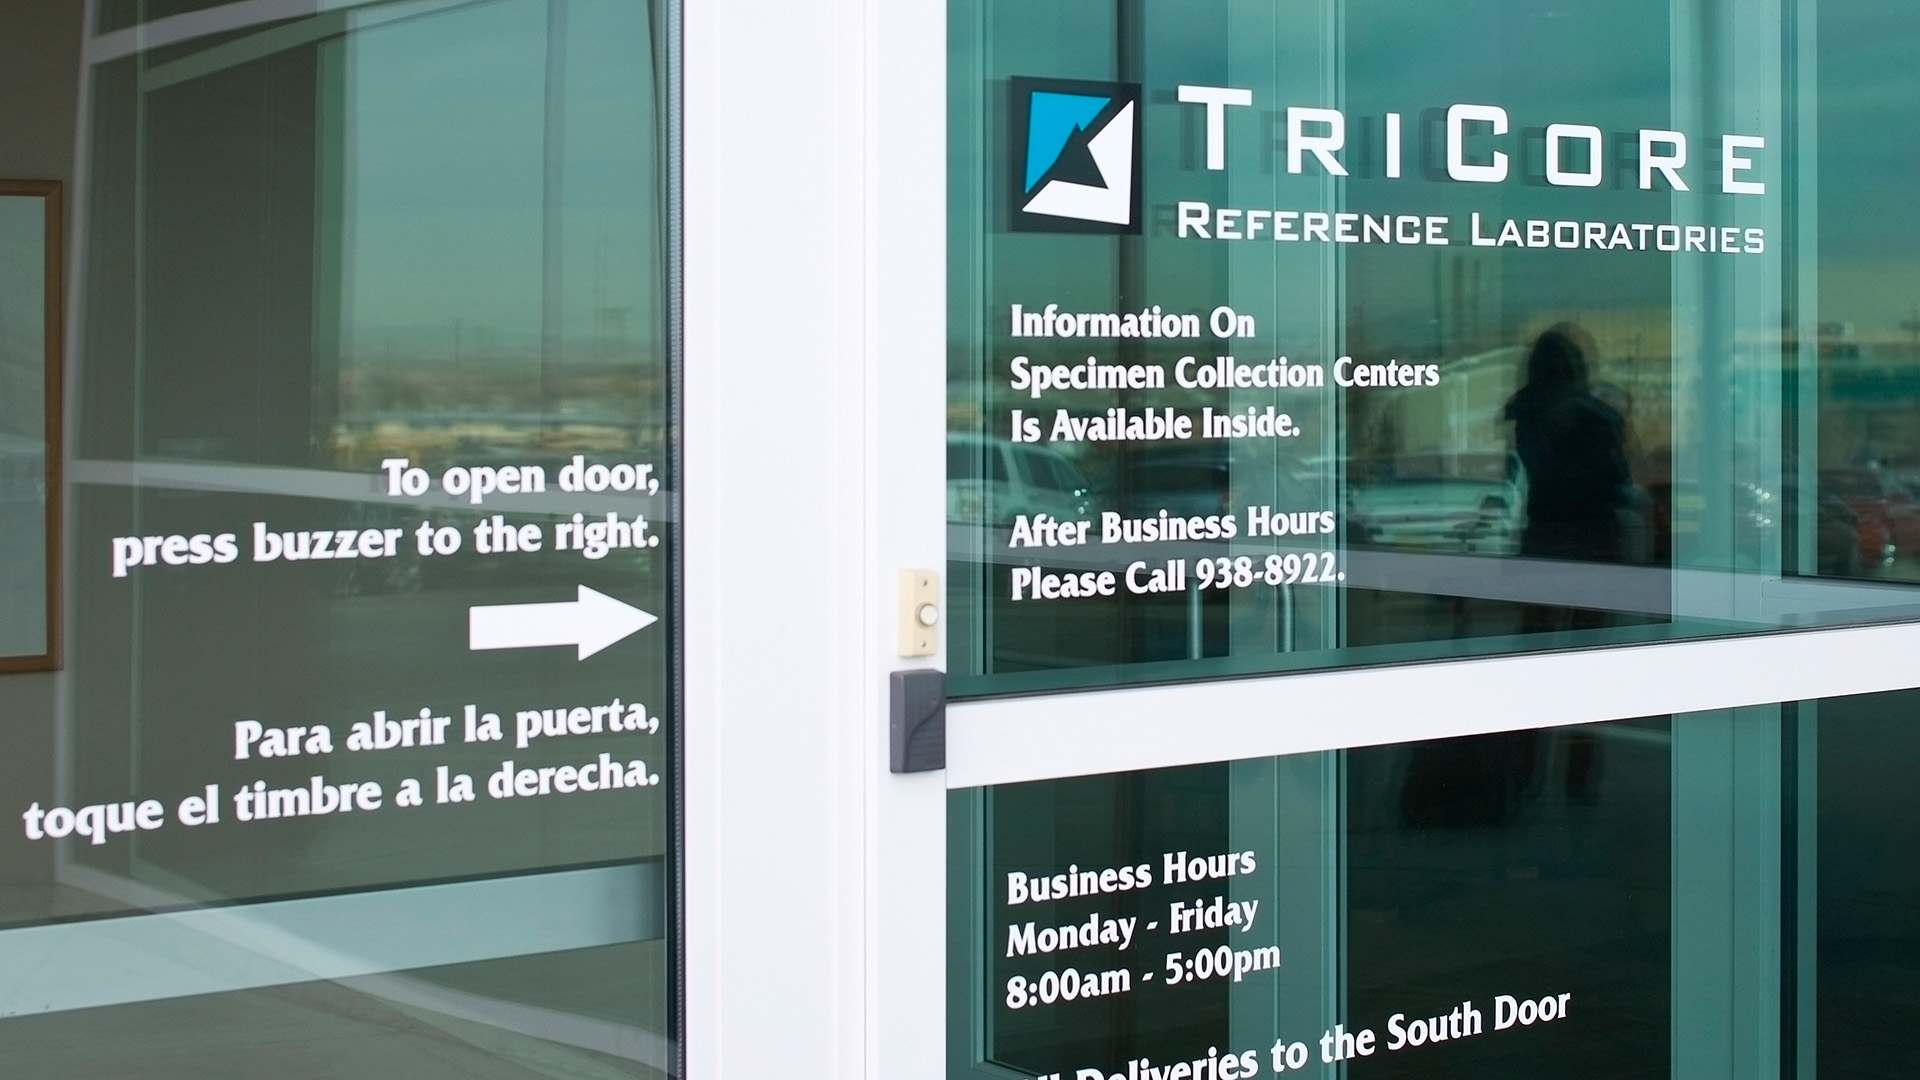 TriCore Reference Laboratories